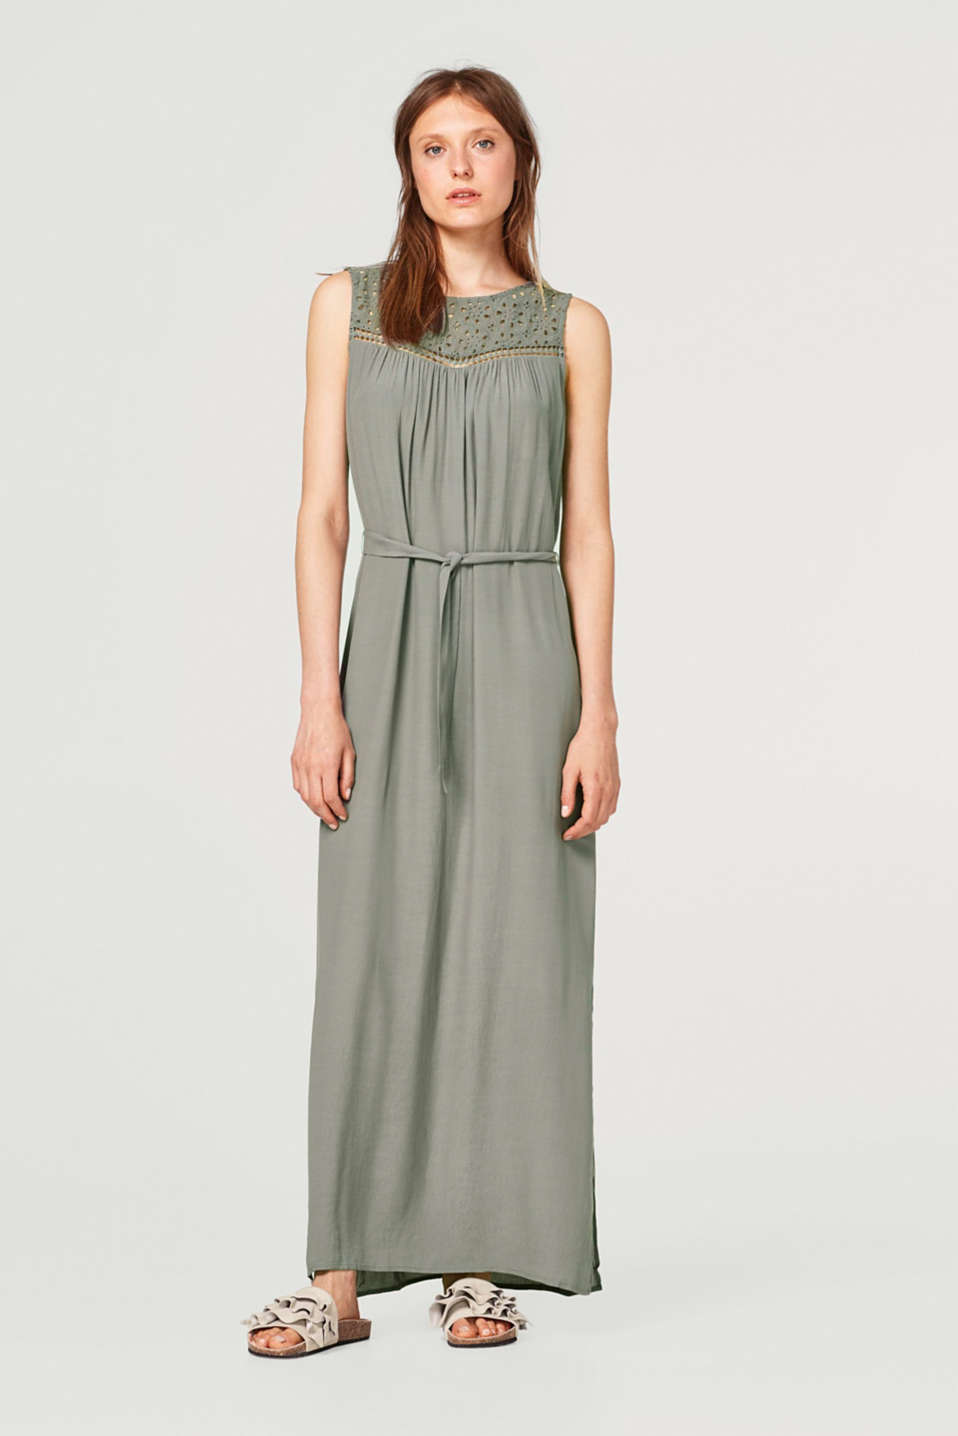 Esprit - Lightweight crêpe maxi dress with elegant broderie anglaise